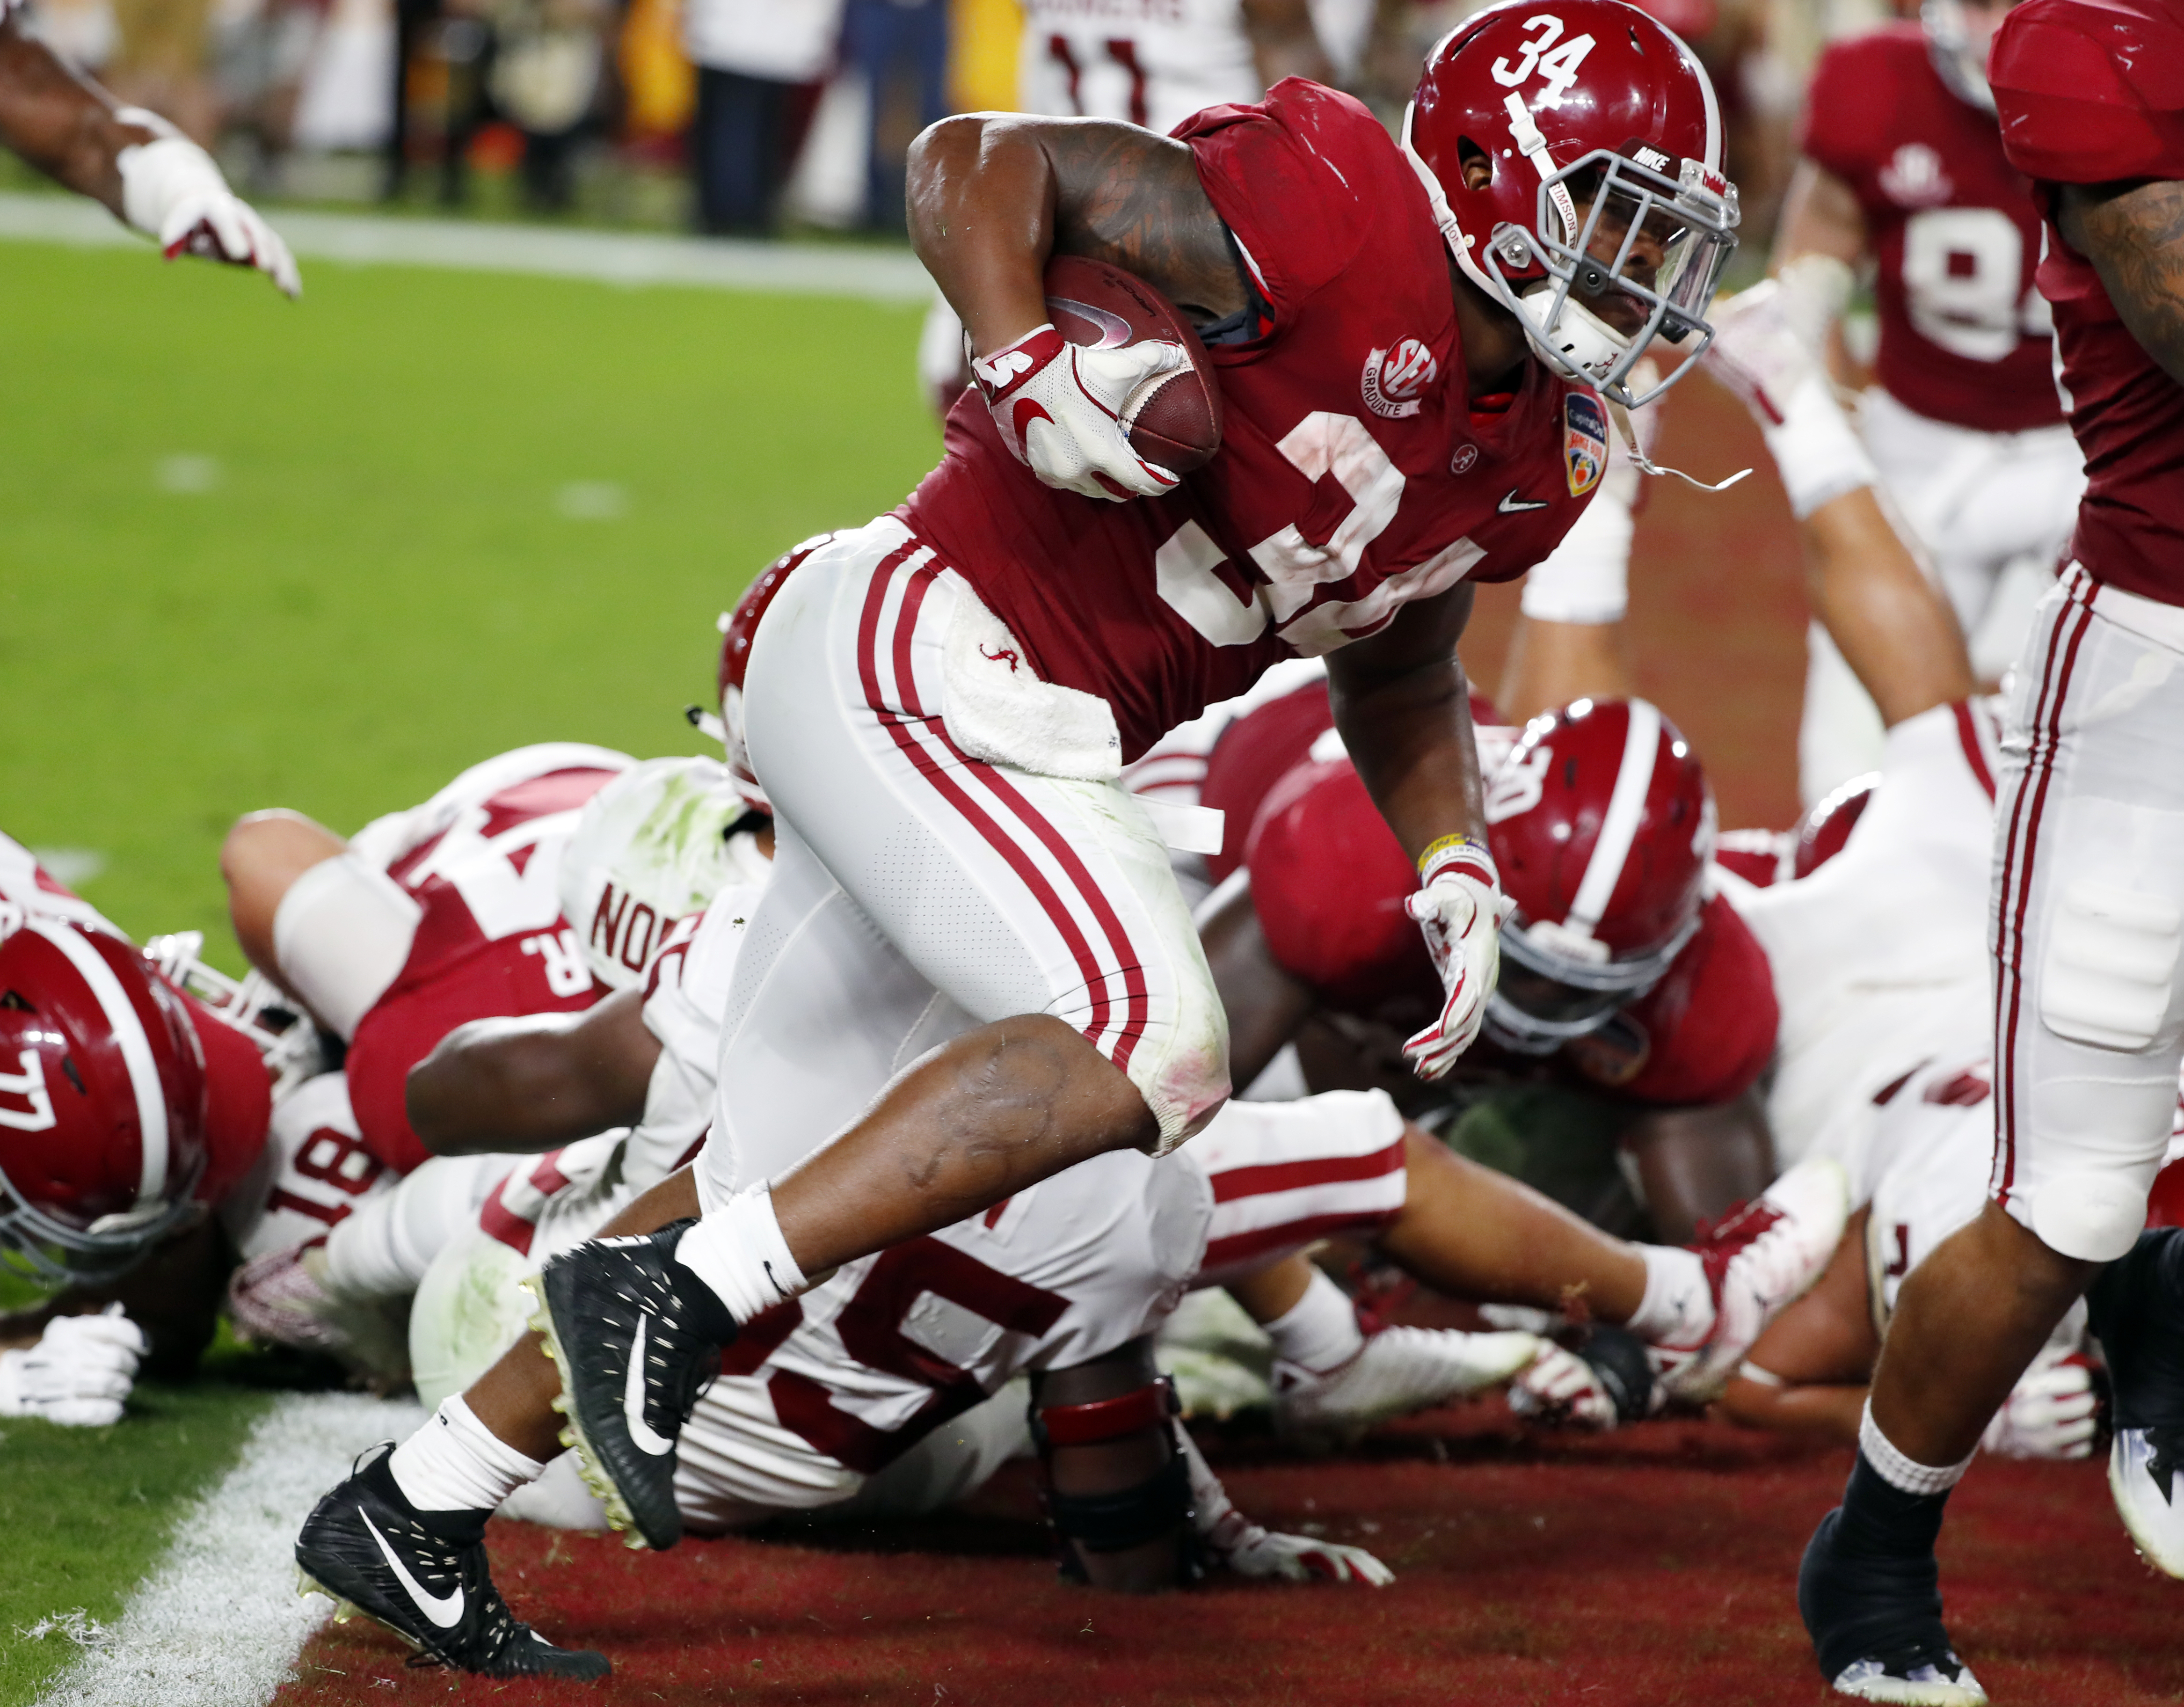 Alabama running back Damien Harris (34) scores a touchdown, during the first half of the Orange Bowl NCAA college football game against Oklahoma, Saturday, Dec. 29, 2018, in Miami Gardens, Fla. (AP Photo/Wilfredo Lee)